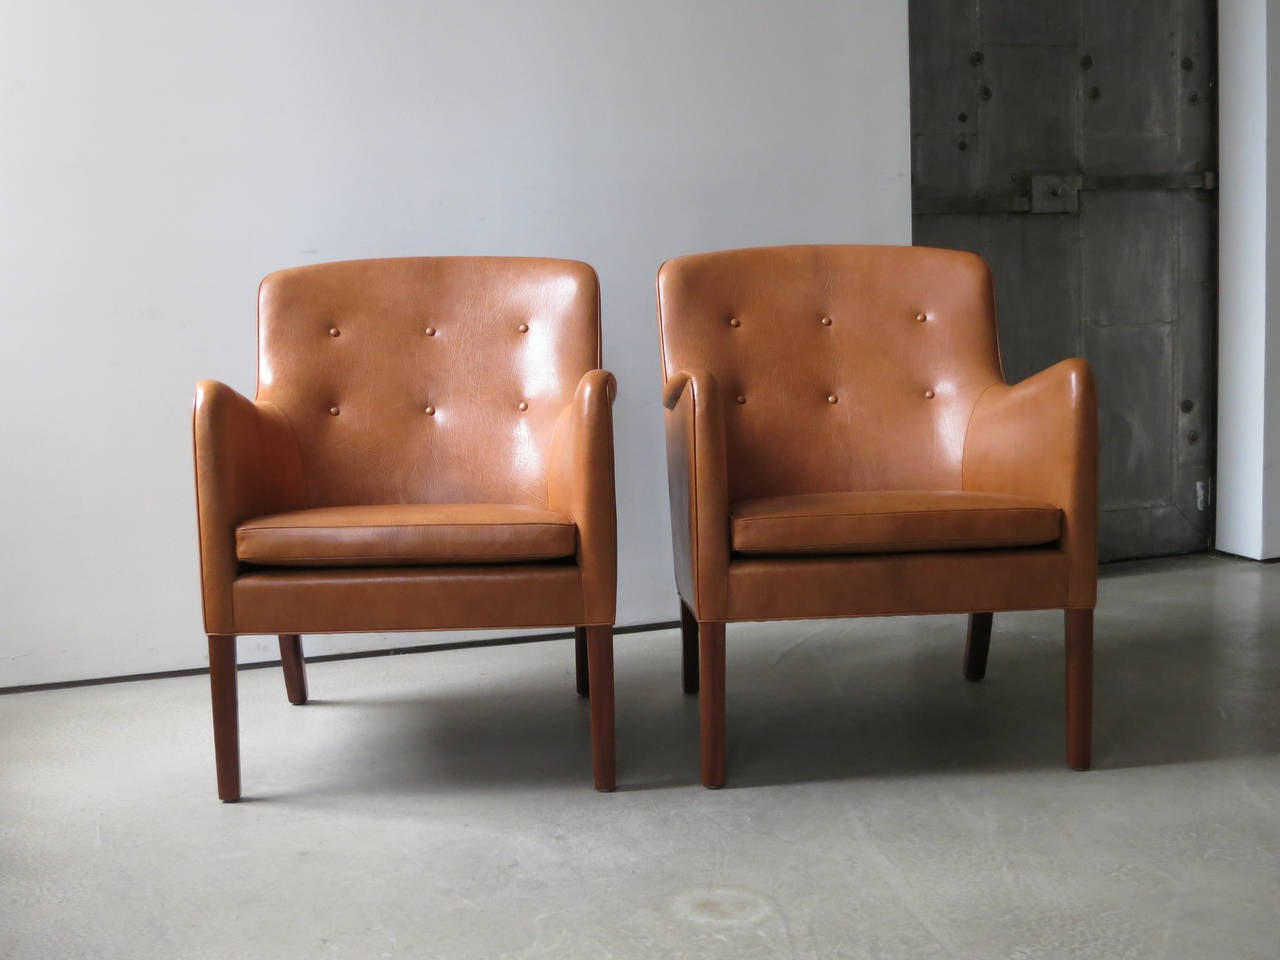 Pair of 1940s Lounge Chairs in Nigerian Leather by Ole Wanscher In Excellent Condition In New York, NY